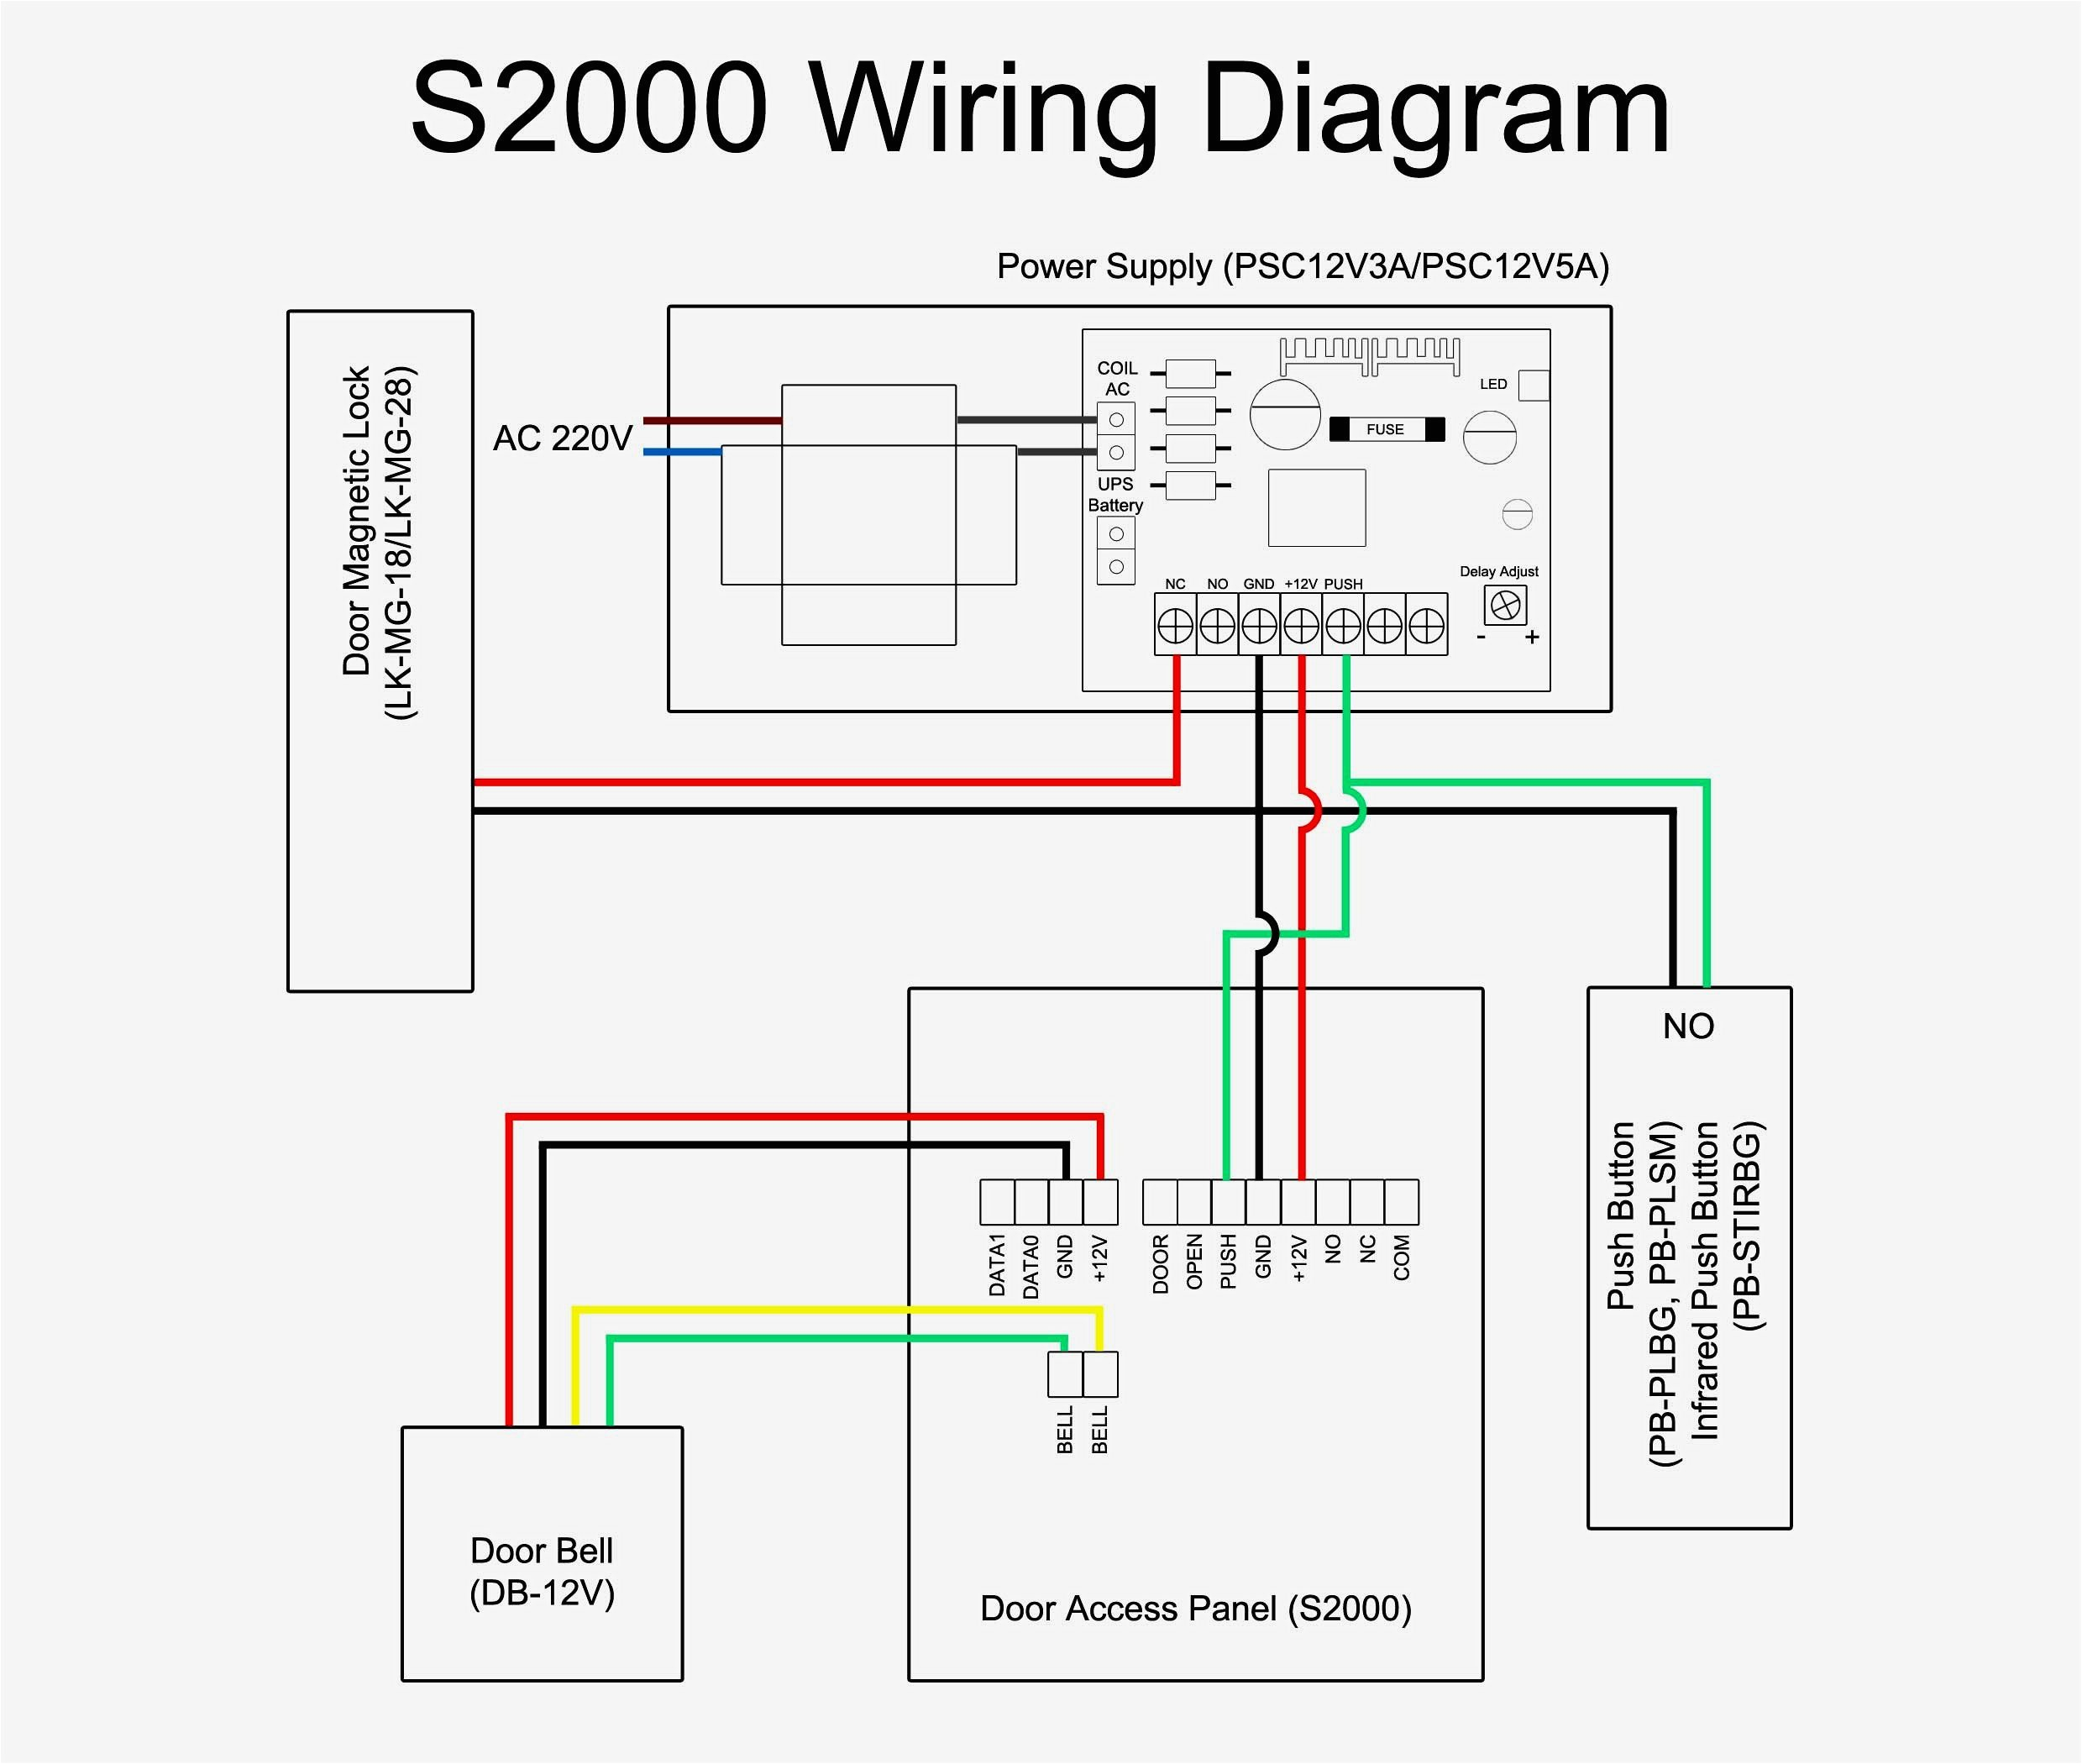 apartment wiring diagrams wiring diagramtelex intercom wiring diagram wiring diagram sheetapartment intercom wiring diagram wiring diagram